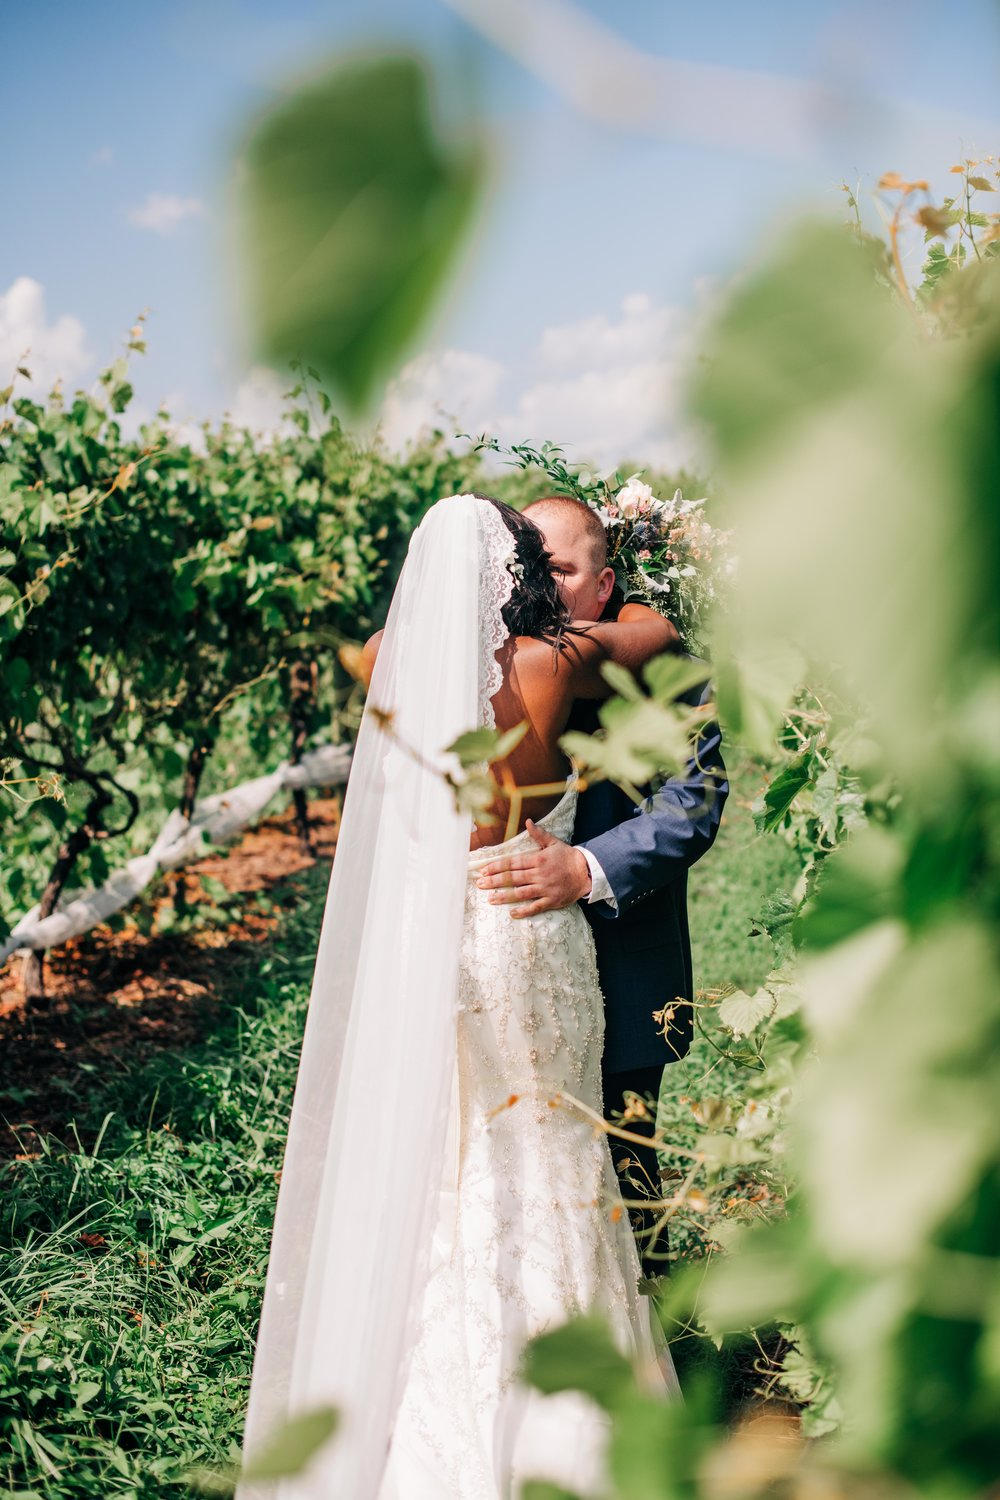 Linganore Winecellar Wedding | Winery & Vineyard in Maryland | Local & Destination Wedding Photography | Landrum Photography, LLC